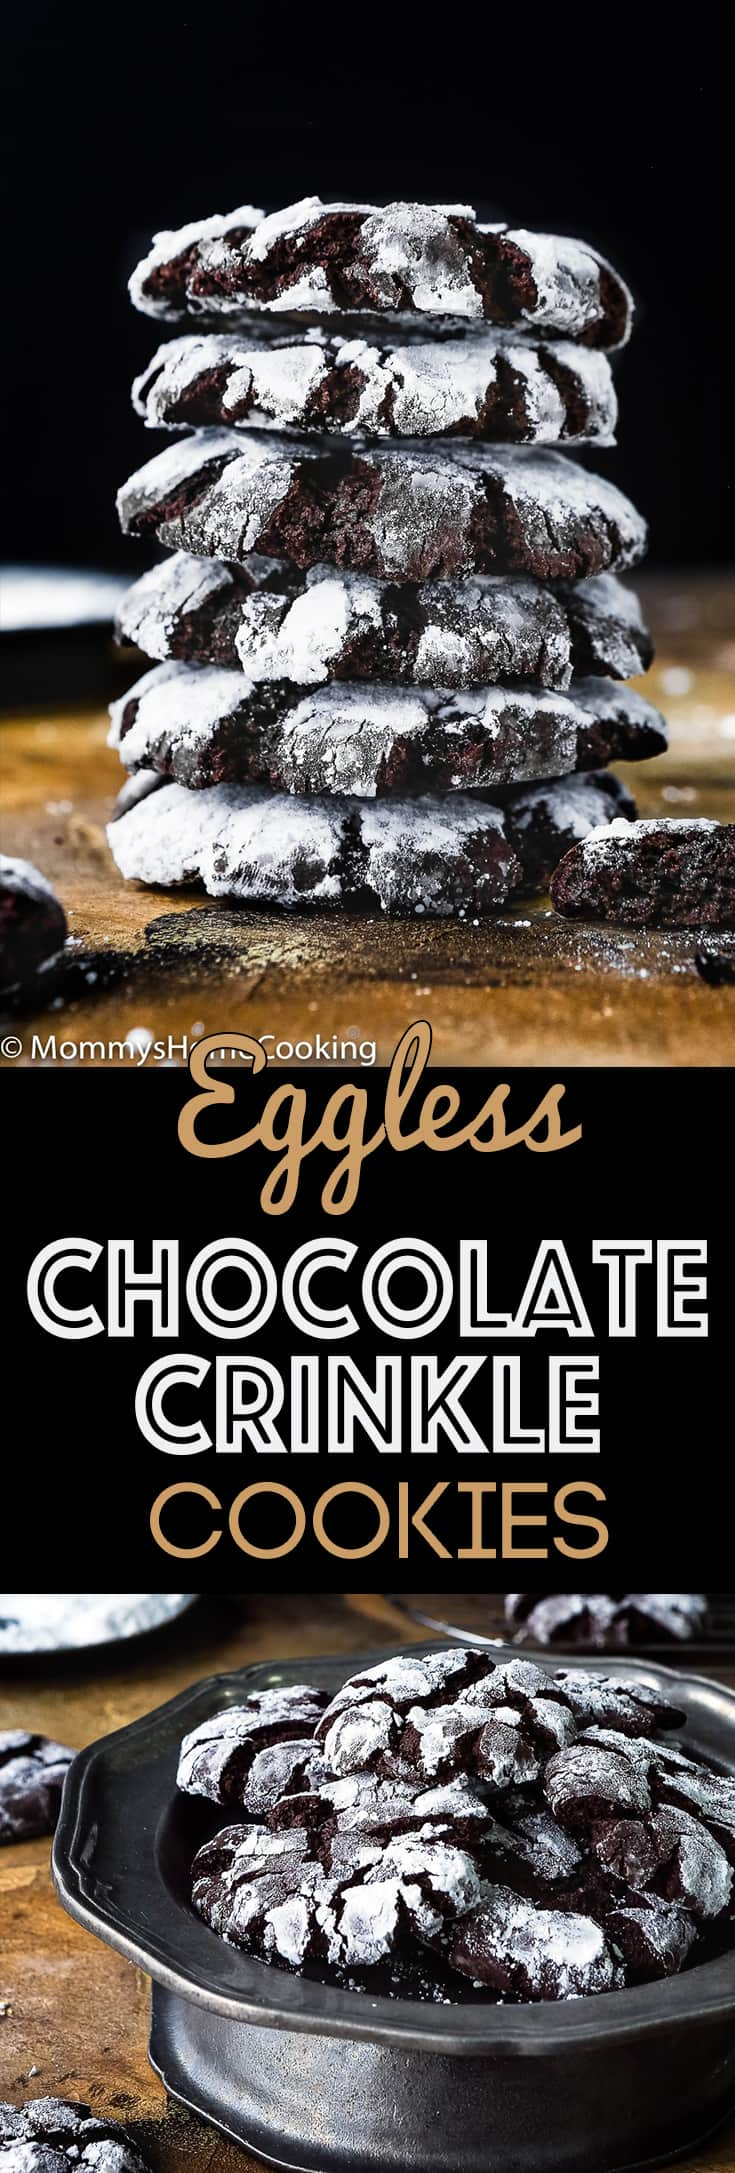 These Eggless Chocolate Crinkle Cookies are moist and fudgy on the inside, and slightly crisp on the outside. Nothing shouts out Happy Holidays like a great plate of chocolatey cookies. Easy to make, even easier to eat! https://mommyshomecooking.com